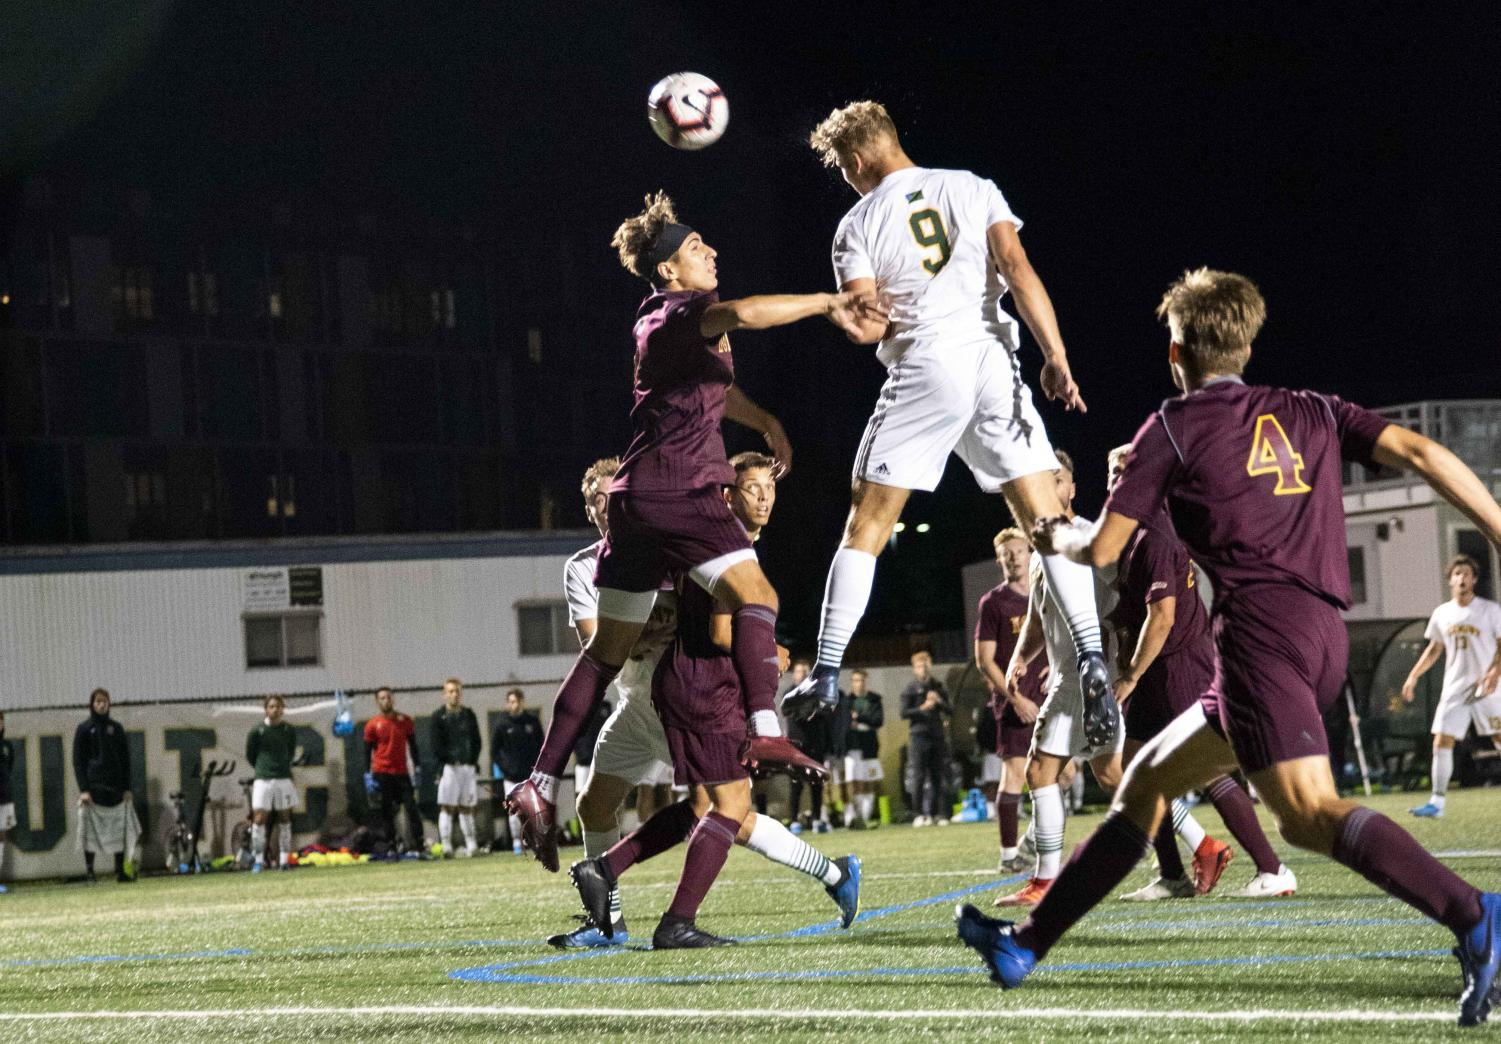 Men's soccer forward Rasmus Tobinski, a first-year, heads the ball over the head of an Iona College player, Sept. 6. Tobinski hails from Kiel, Germany.